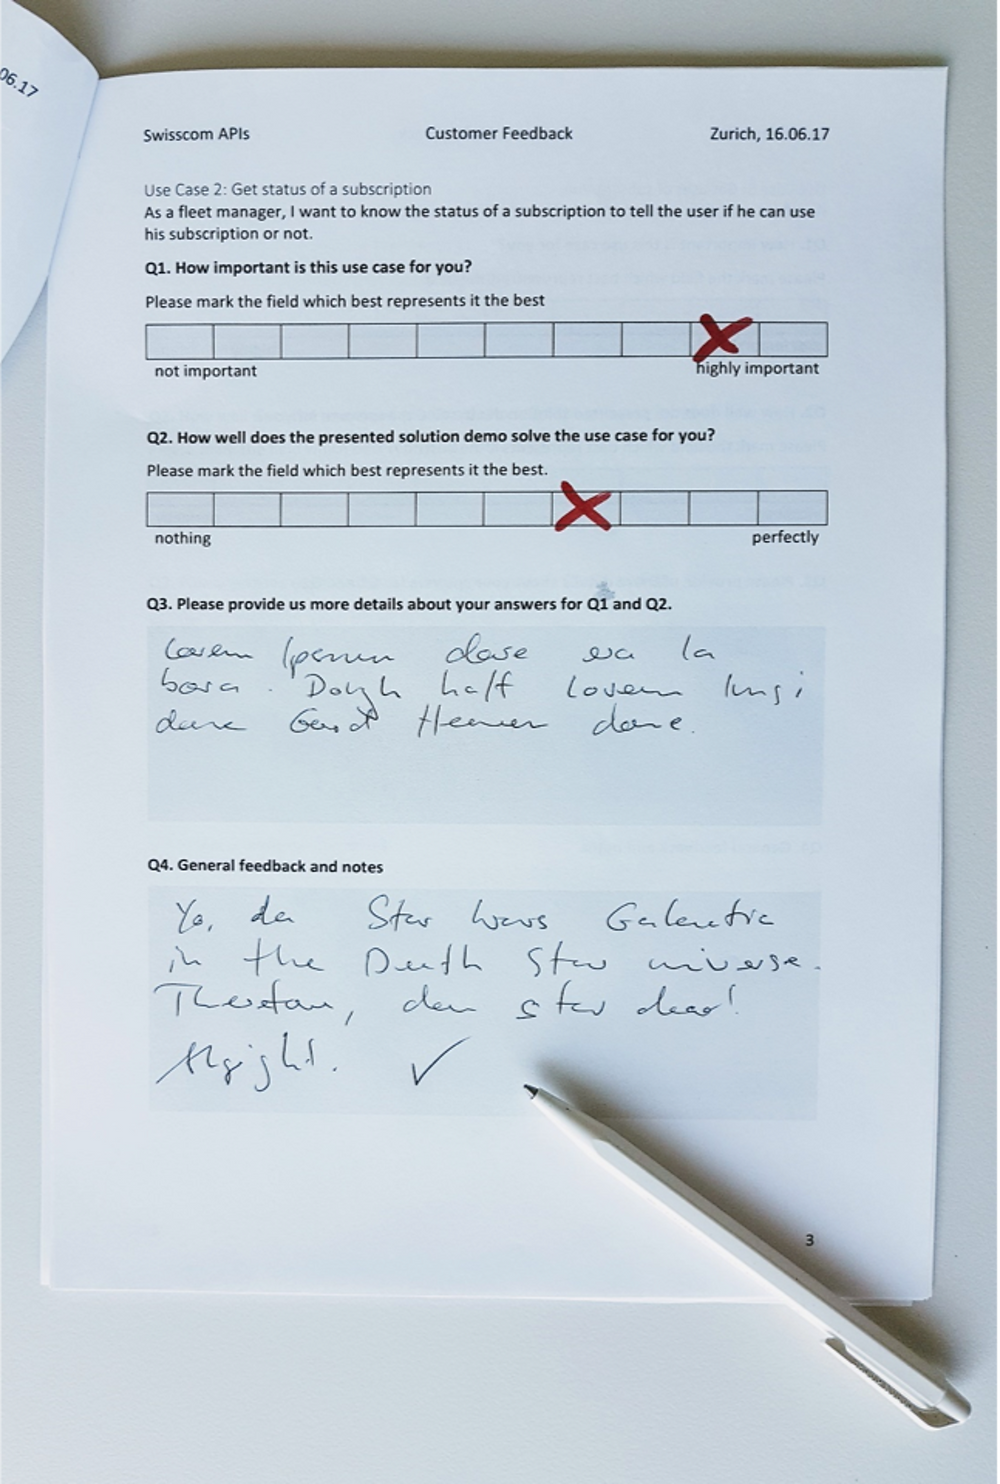 Collect customer feedback with a form.